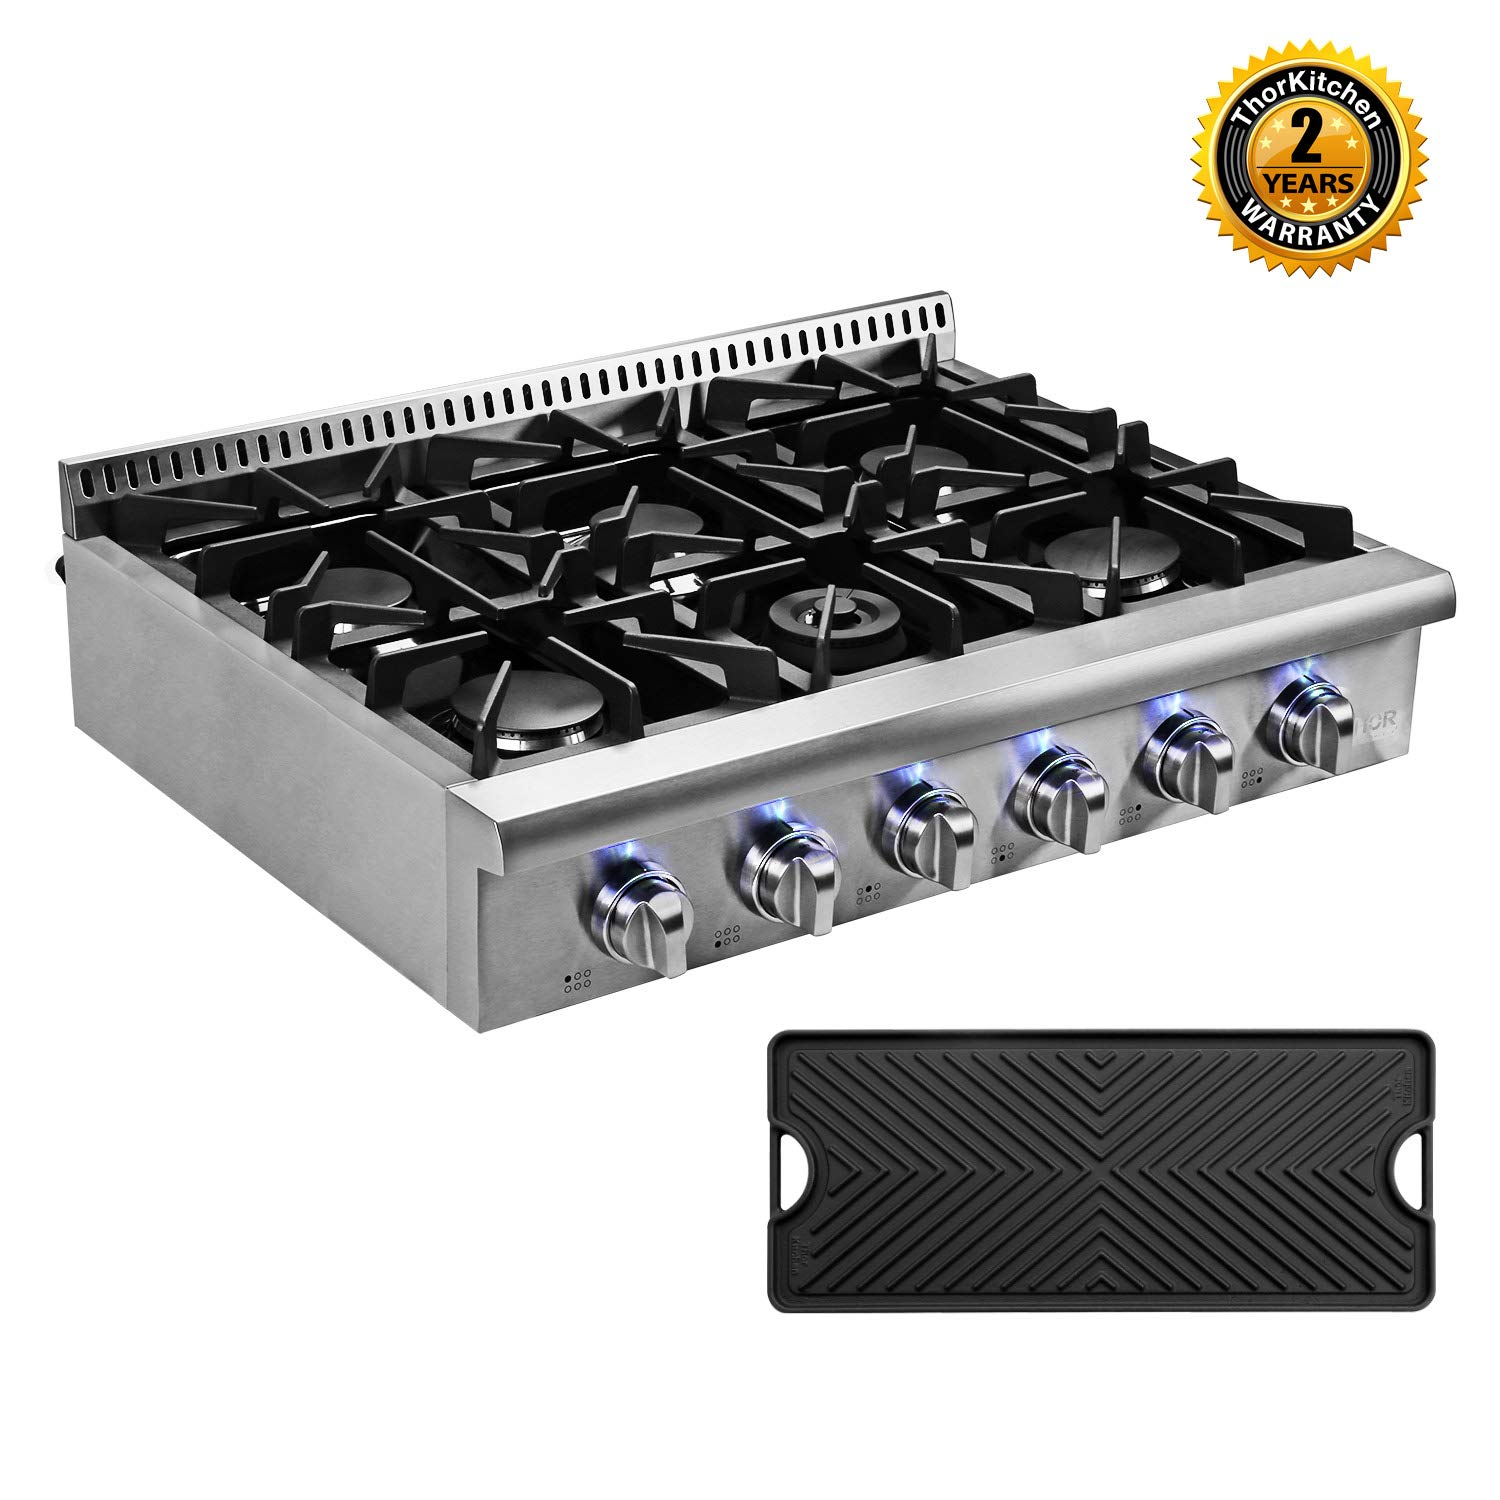 Thor Kitchen Pro-Style 36'' Gas Rangetop with 6 Sealed Burners, Flat Cast-Iron Grates, Cast-Iron Reversible Griddle, Stainless Steel HRT3618U